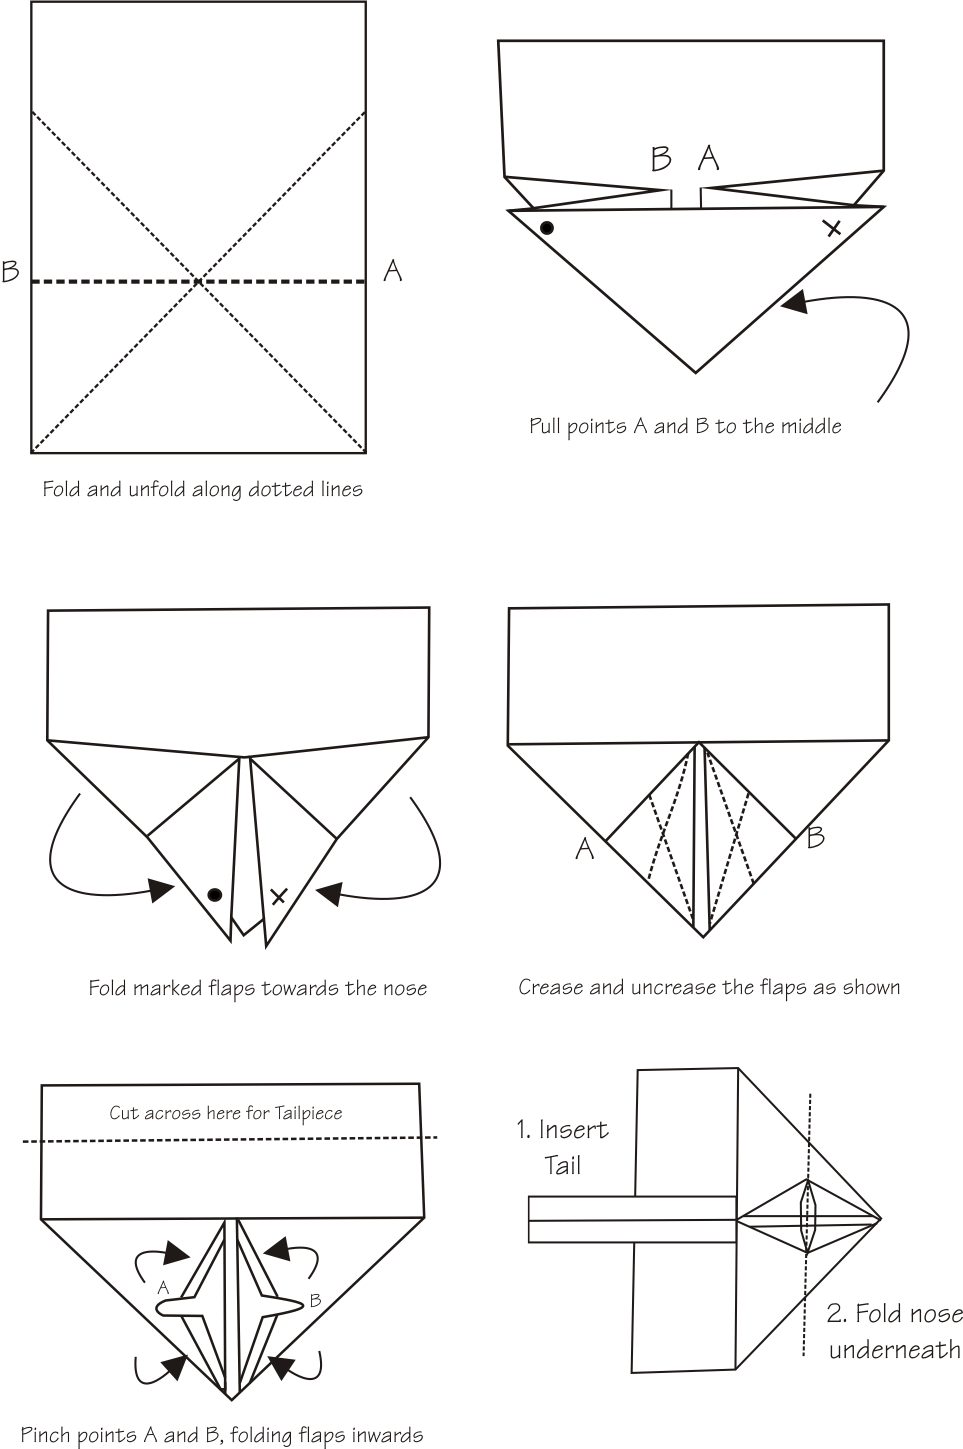 Monster image with regard to paper airplane instructions printable